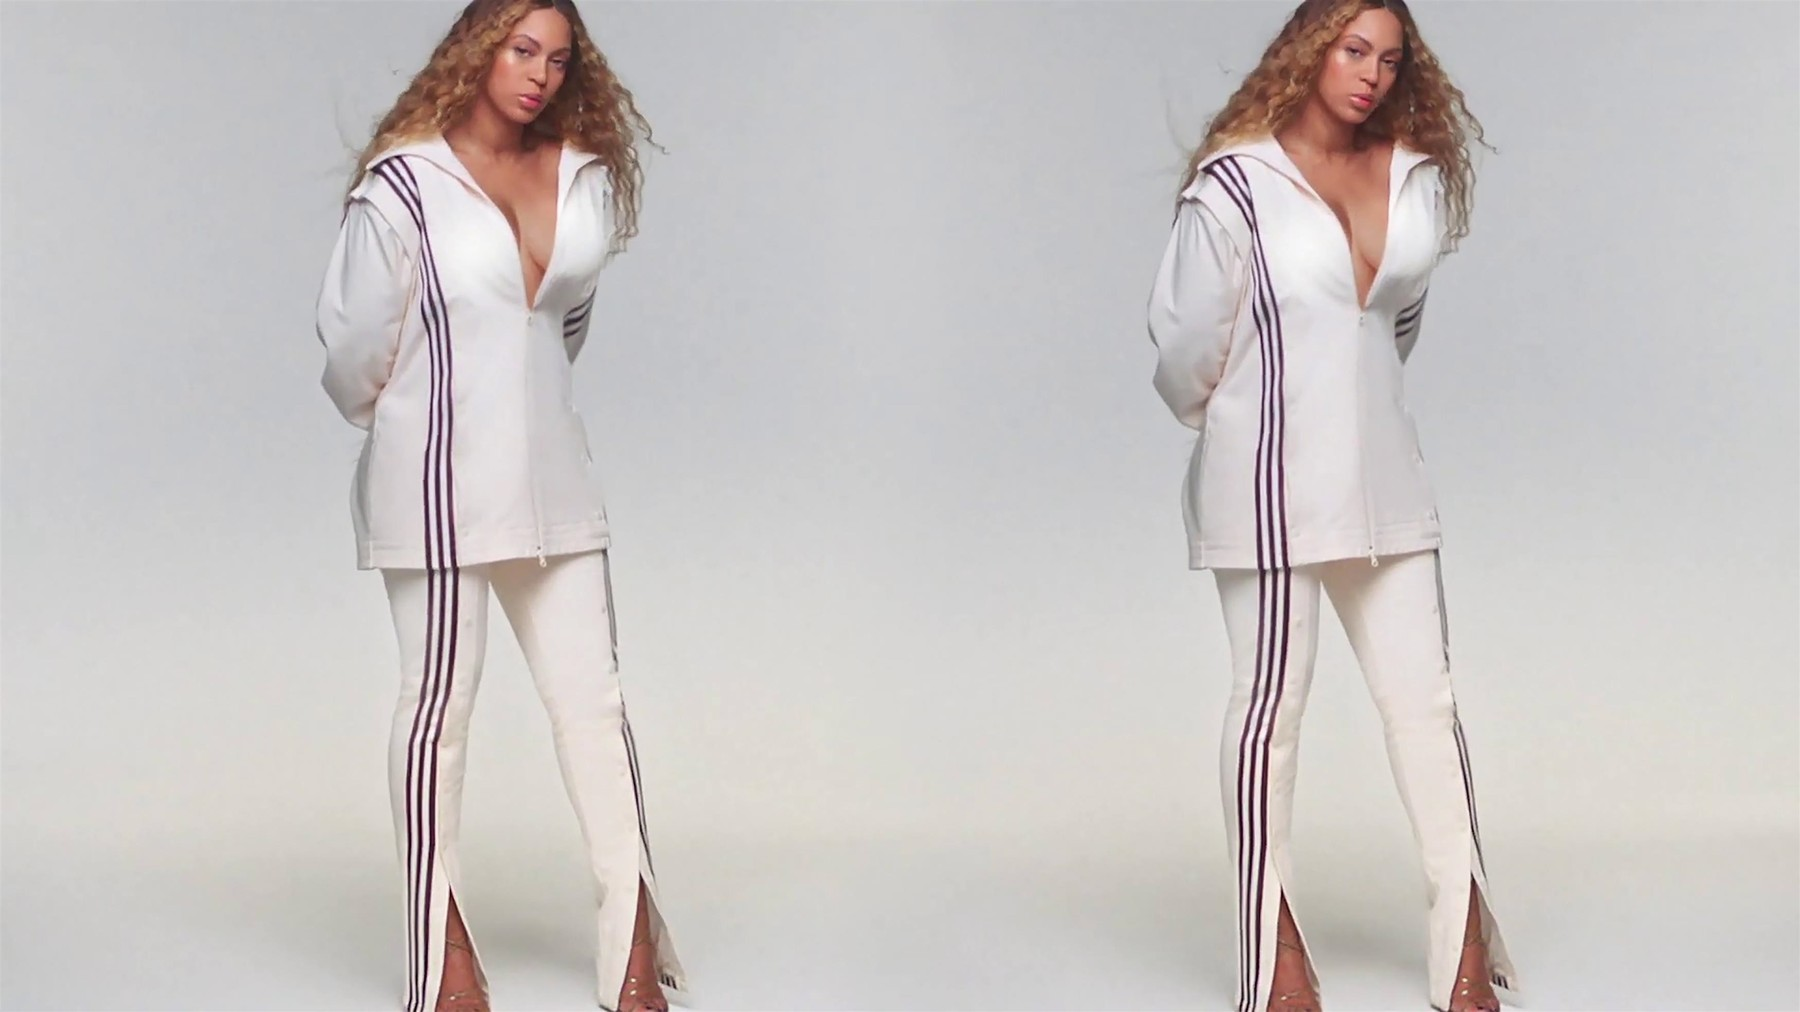 Los Angeles,   - Beyonce releases her commericial for the new Ivy Park x Adidas collaboration after cutting ties with Topshop      ---------           *  *UK Clients - Pictures Containing Children Please Pixelate Face Prior To Publication*,Image: 491782325, License: Rights-managed, Restrictions: RIGHTS: WORLDWIDE EXCEPT IN UNITED STATES, Model Release: no, Credit line: BACKGRID / Backgrid UK / Profimedia